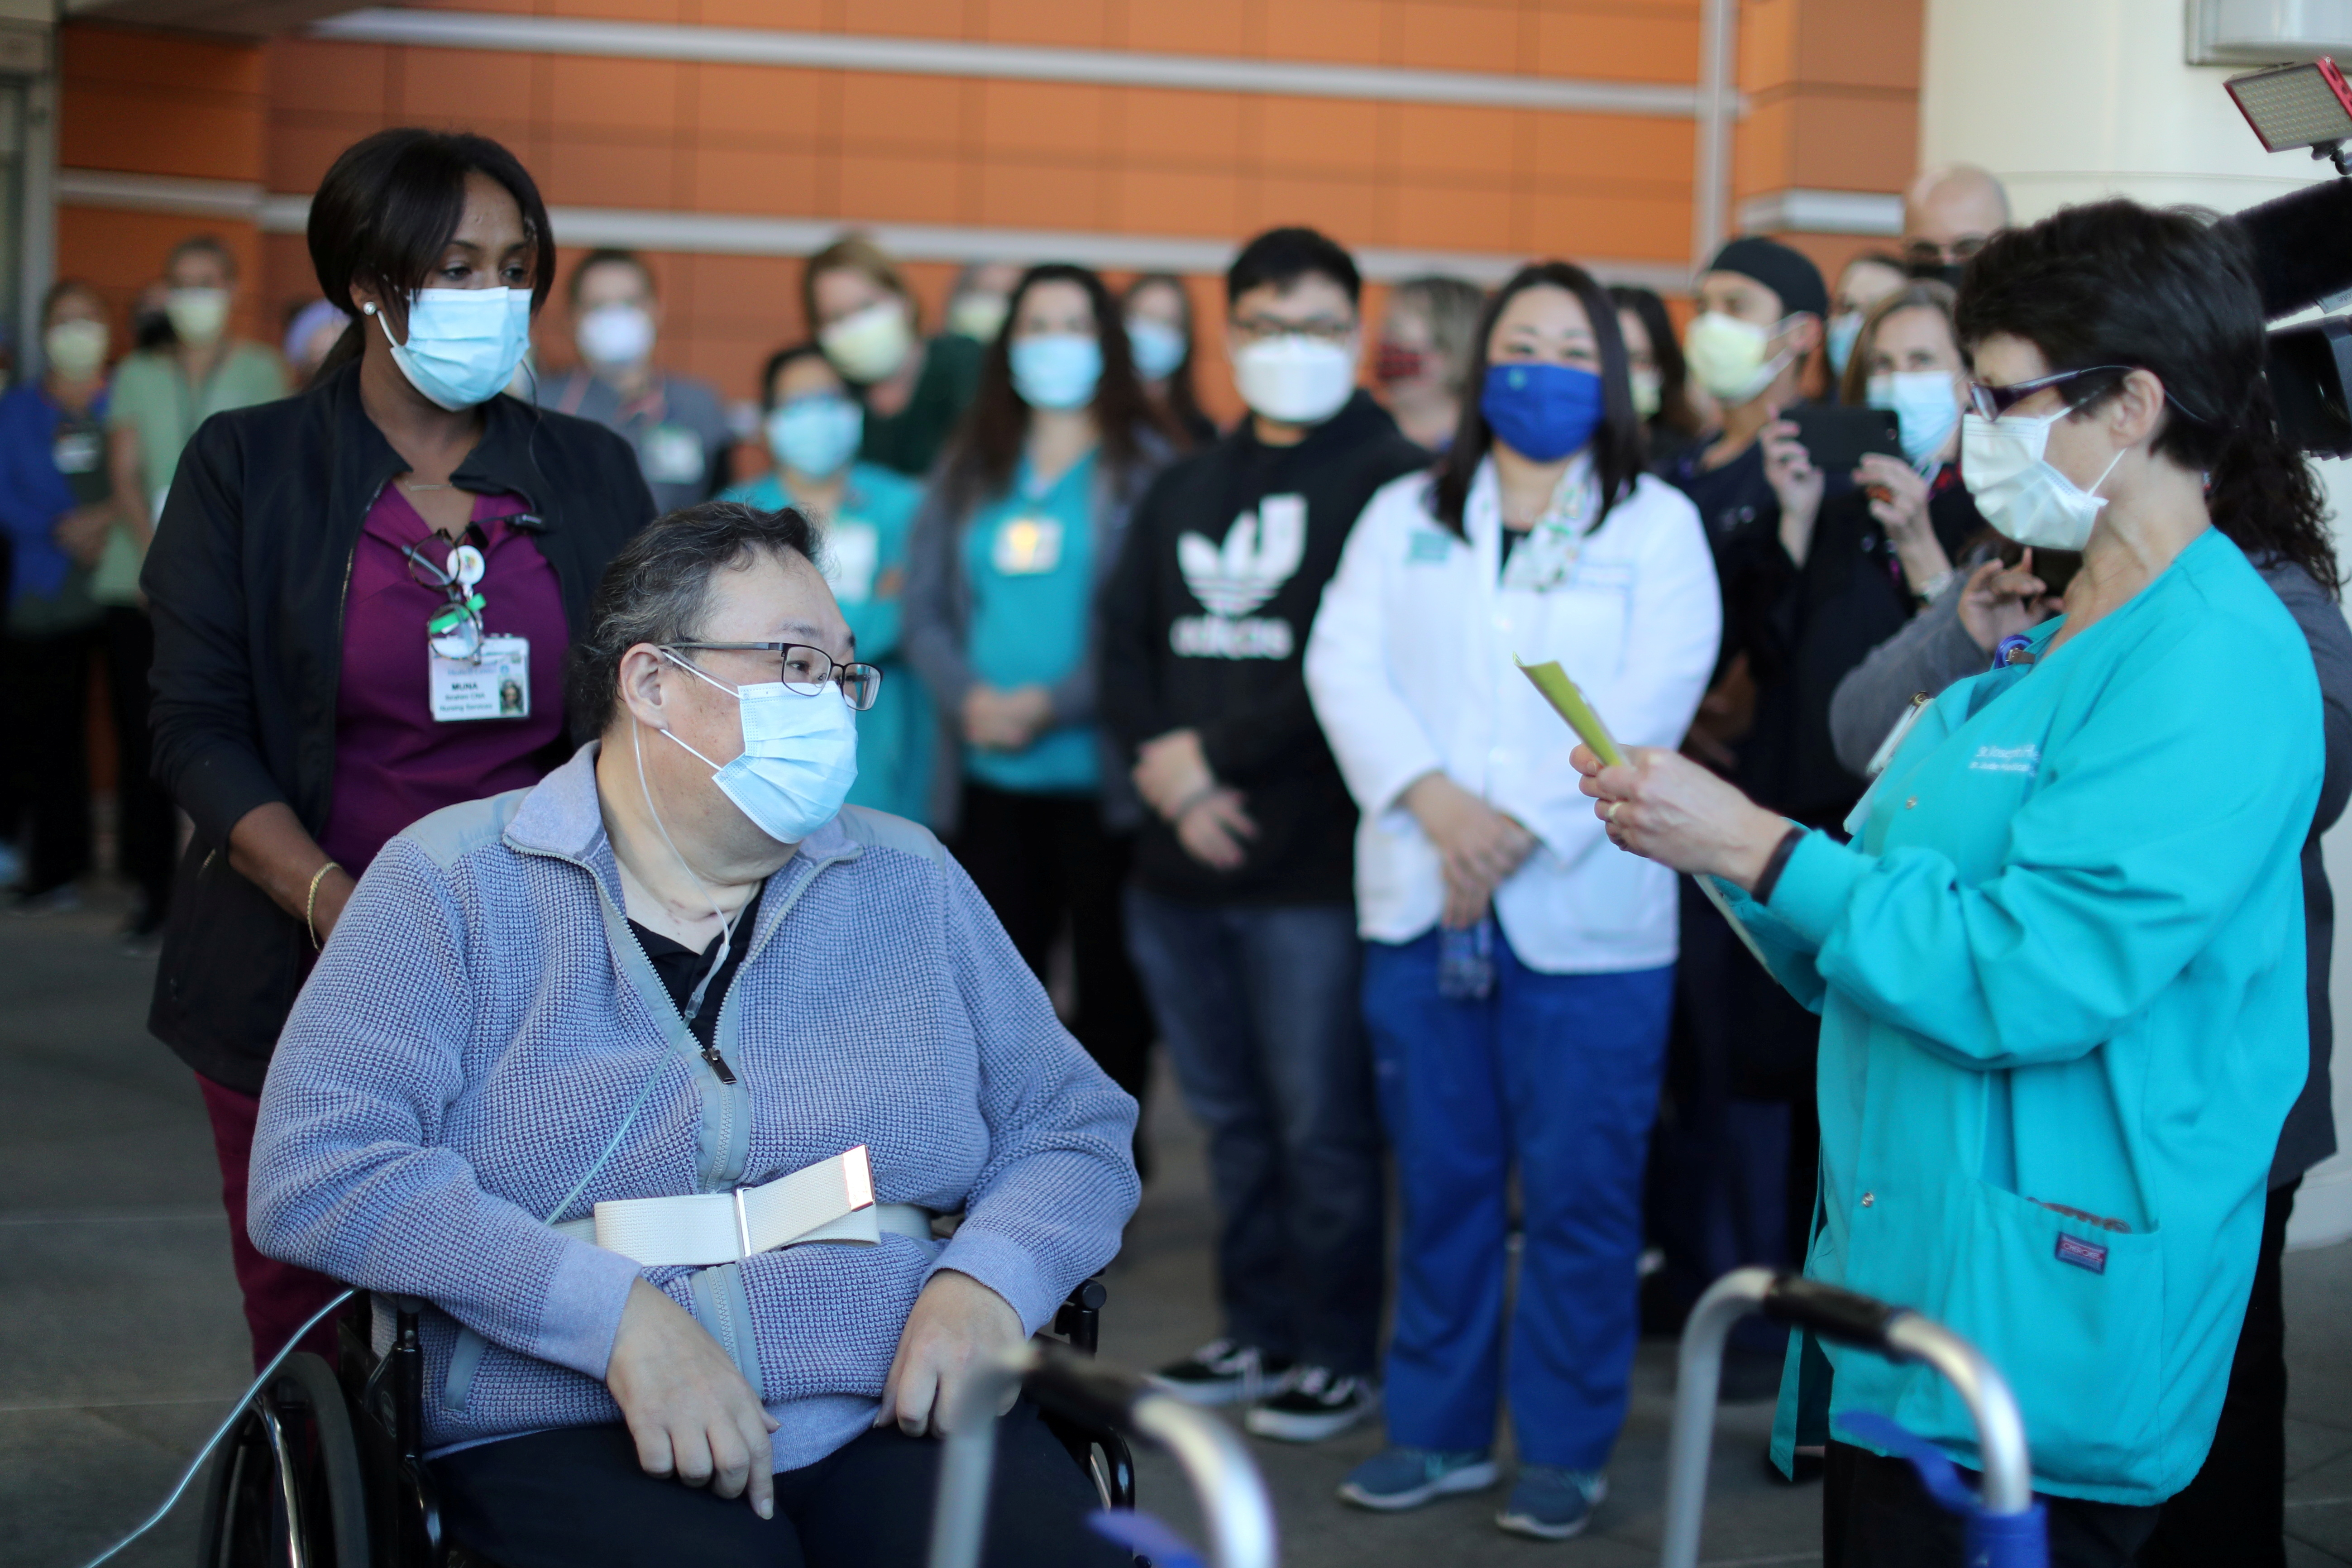 A medical worker reads a poem to Daniel Kim, 48, as he leaves St. Jude Medical Center after five months after surviving the coronavirus disease (COVID-19), in Fullerton, California, U.S., December 16, 2020. REUTERS/Lucy Nicholson